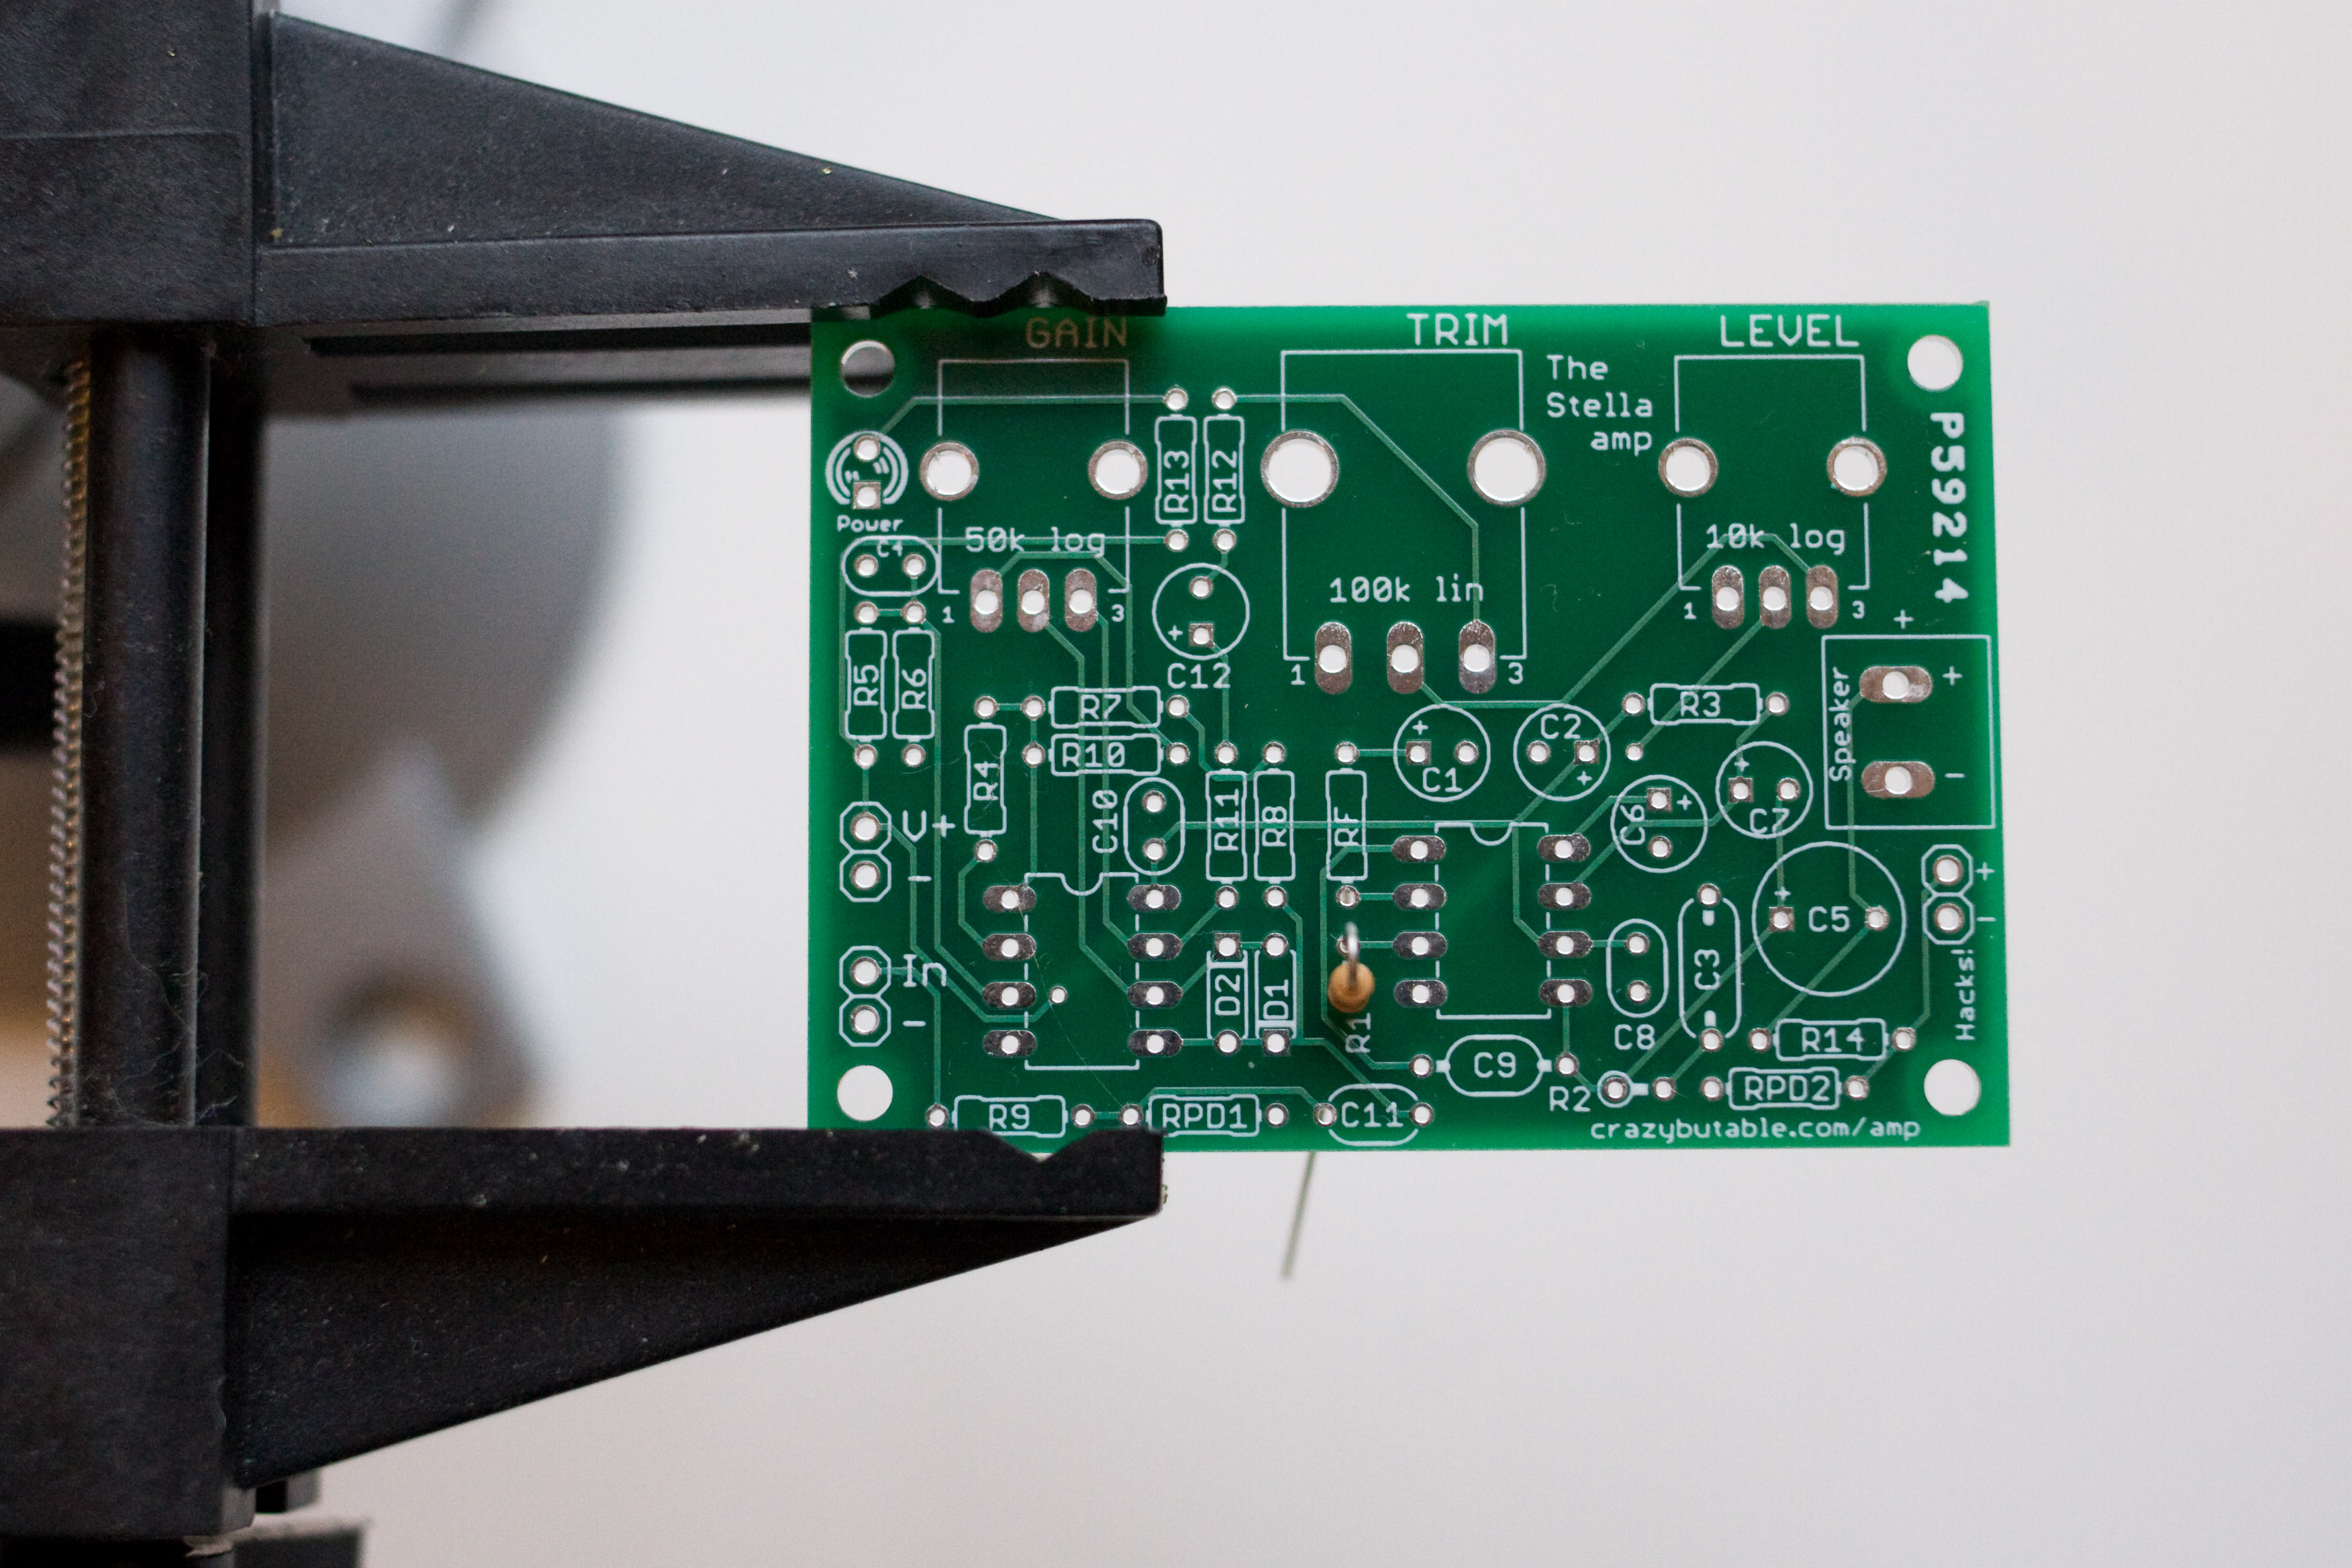 The circuit board with R1 placed.